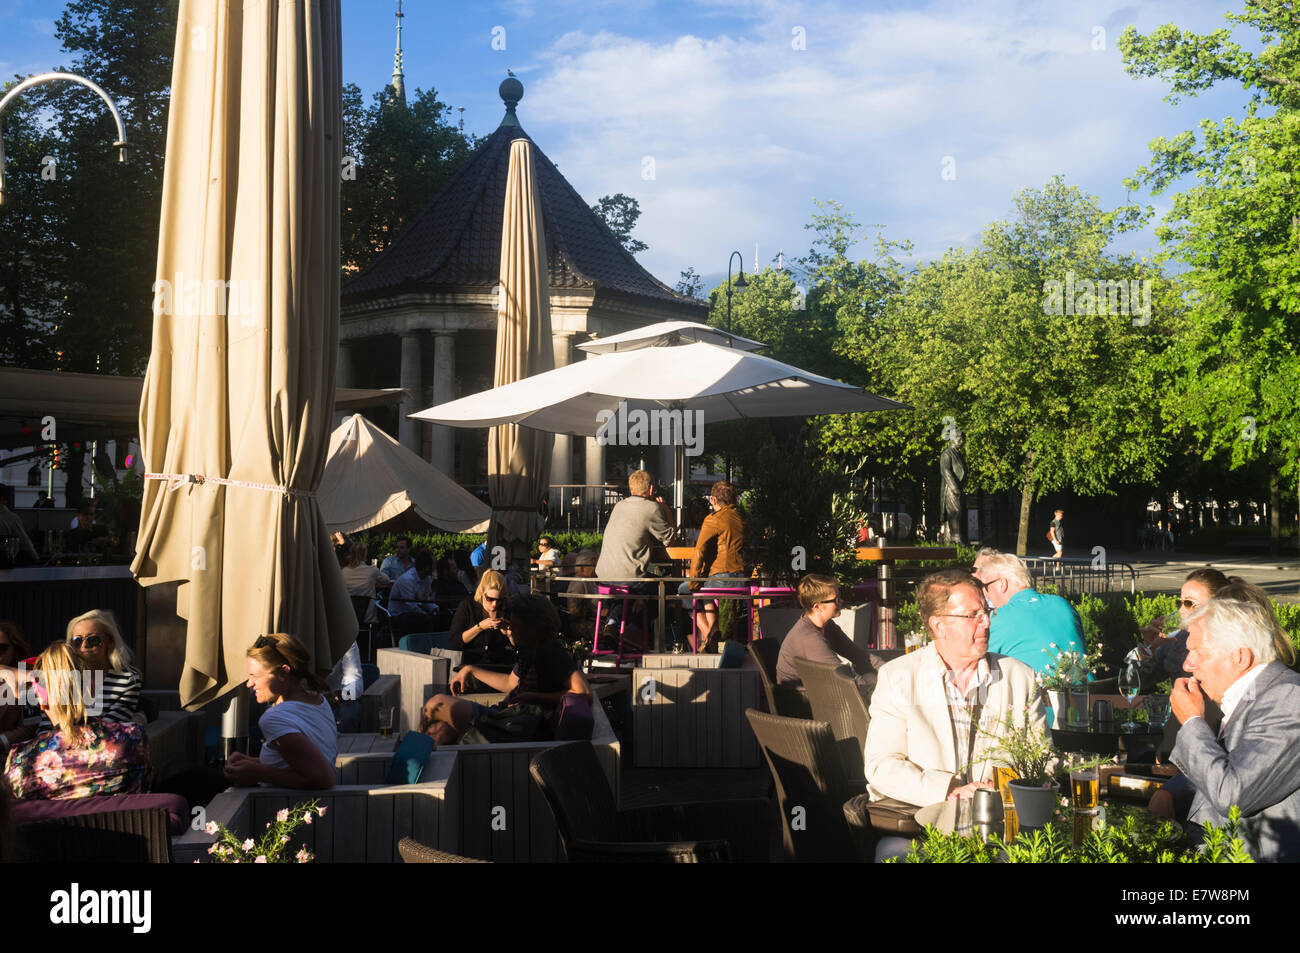 People at an open air bar terrace in a park near Karl Johans Gate. Oslo, Norway - Stock Image